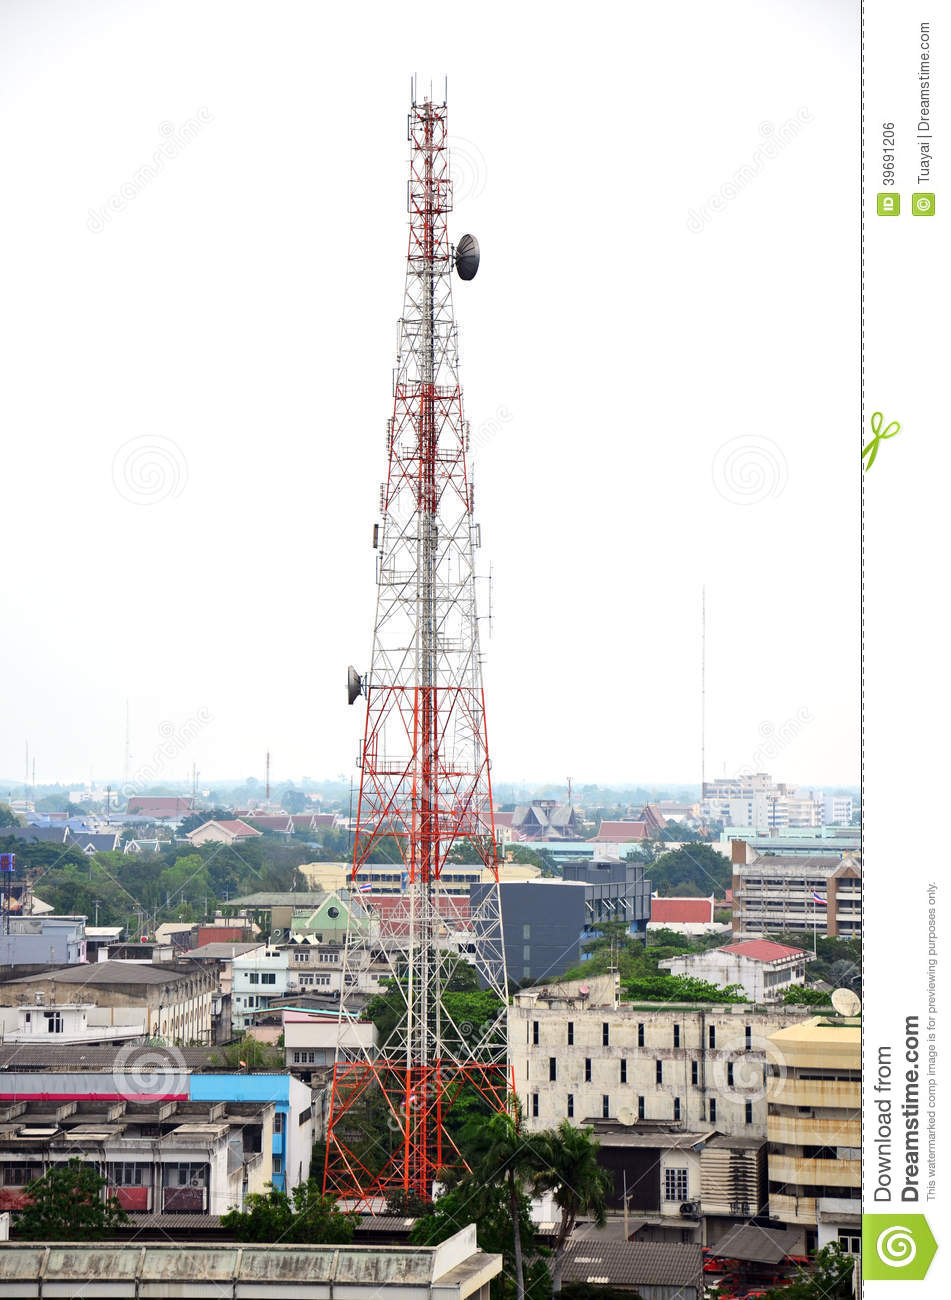 Mobile Phone Tower Or Cell Phone Tower Stock Photo - Image